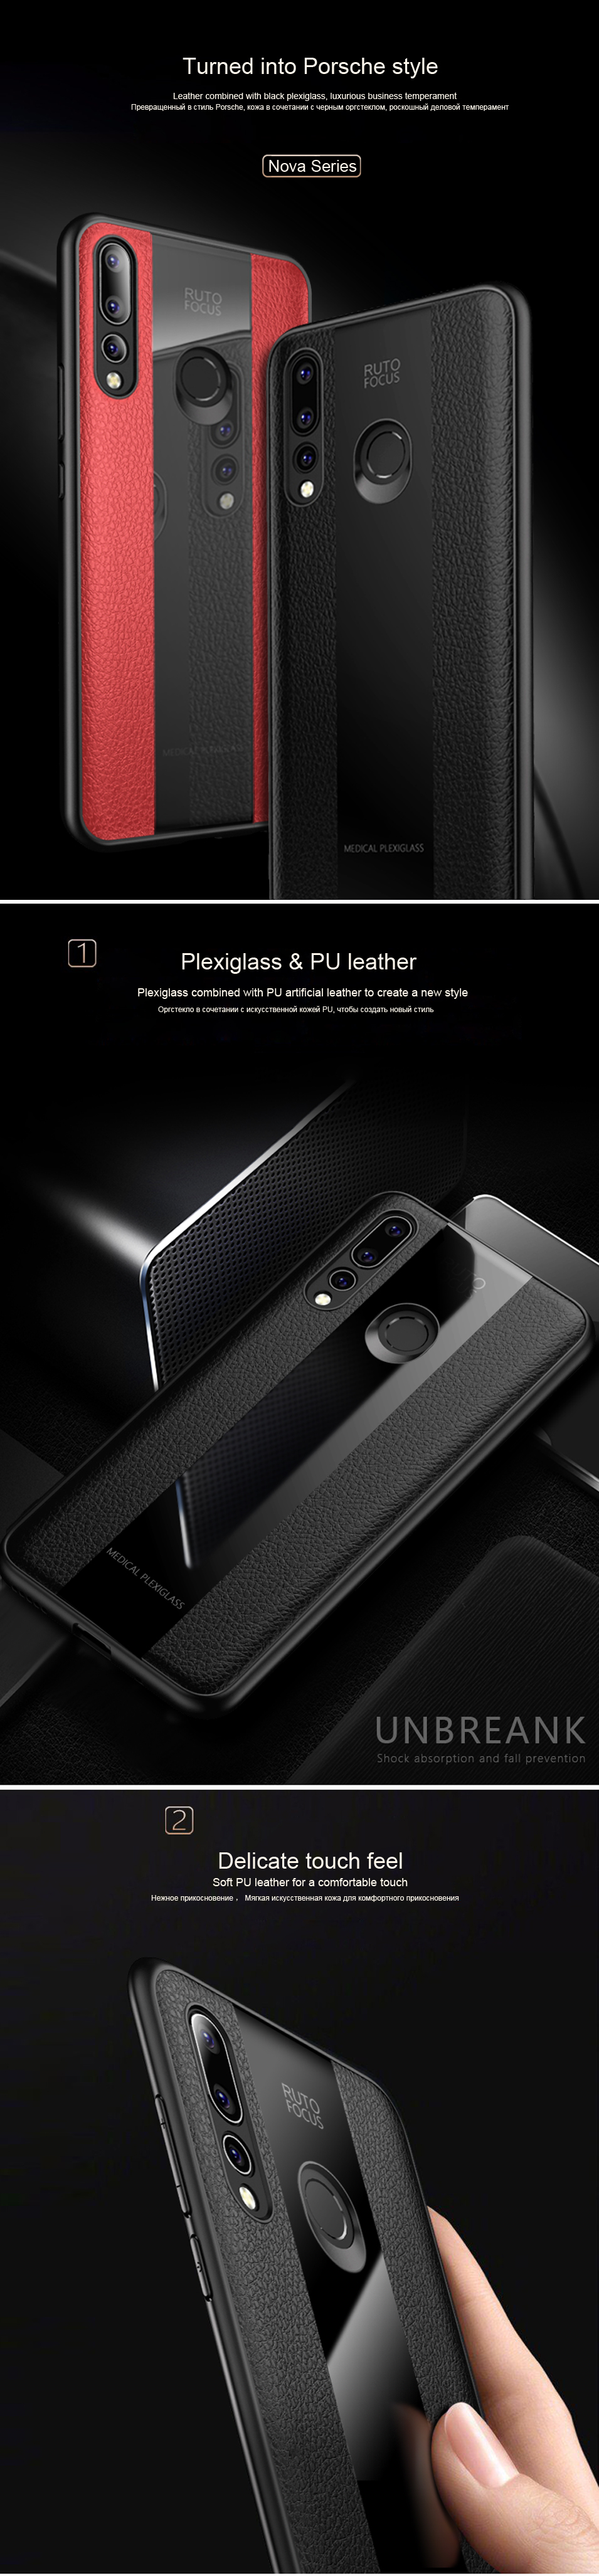 Phone Protective Case for Huawei P Smart 2019 Cover Luxury PU Leather Black Glass Case for Huawei P20 Pro P9 lite 2017 Nova 4 3i (7)